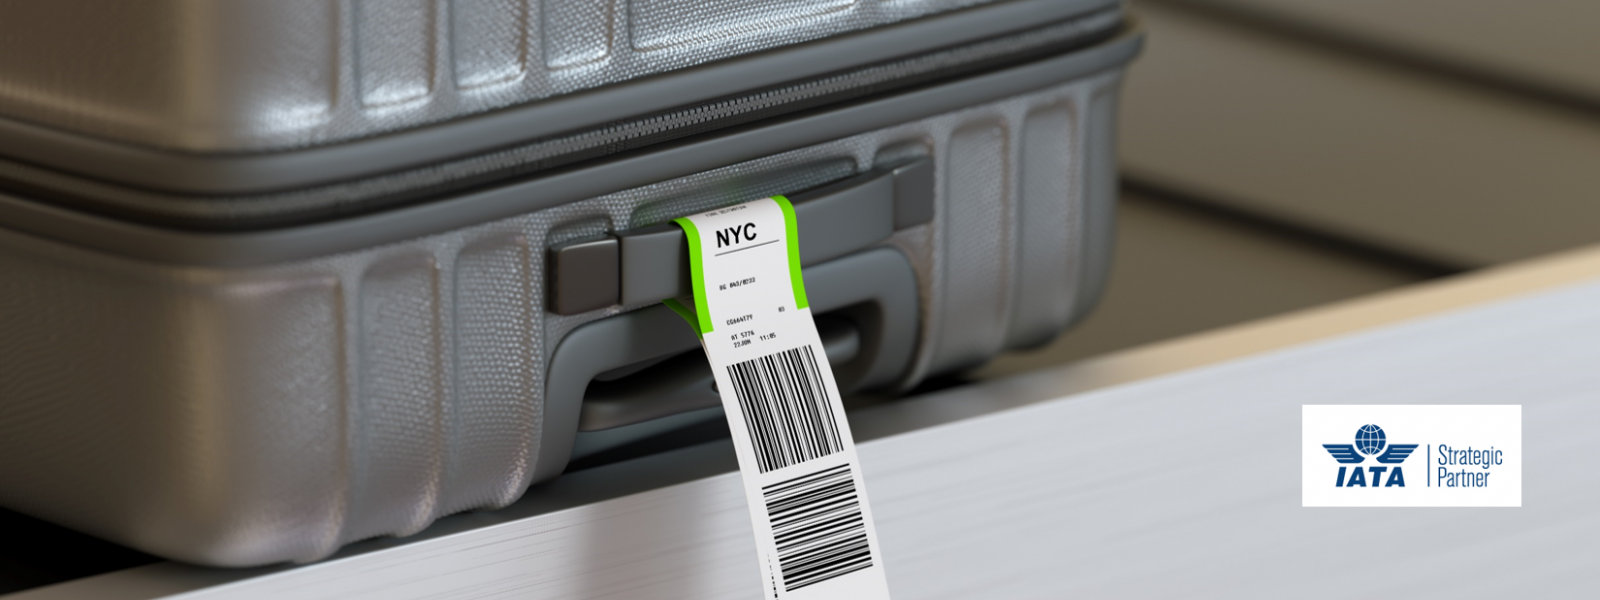 Paragon ID is an IATA strategic partner for the implementation of RFID, implementing bag / luggage tracking